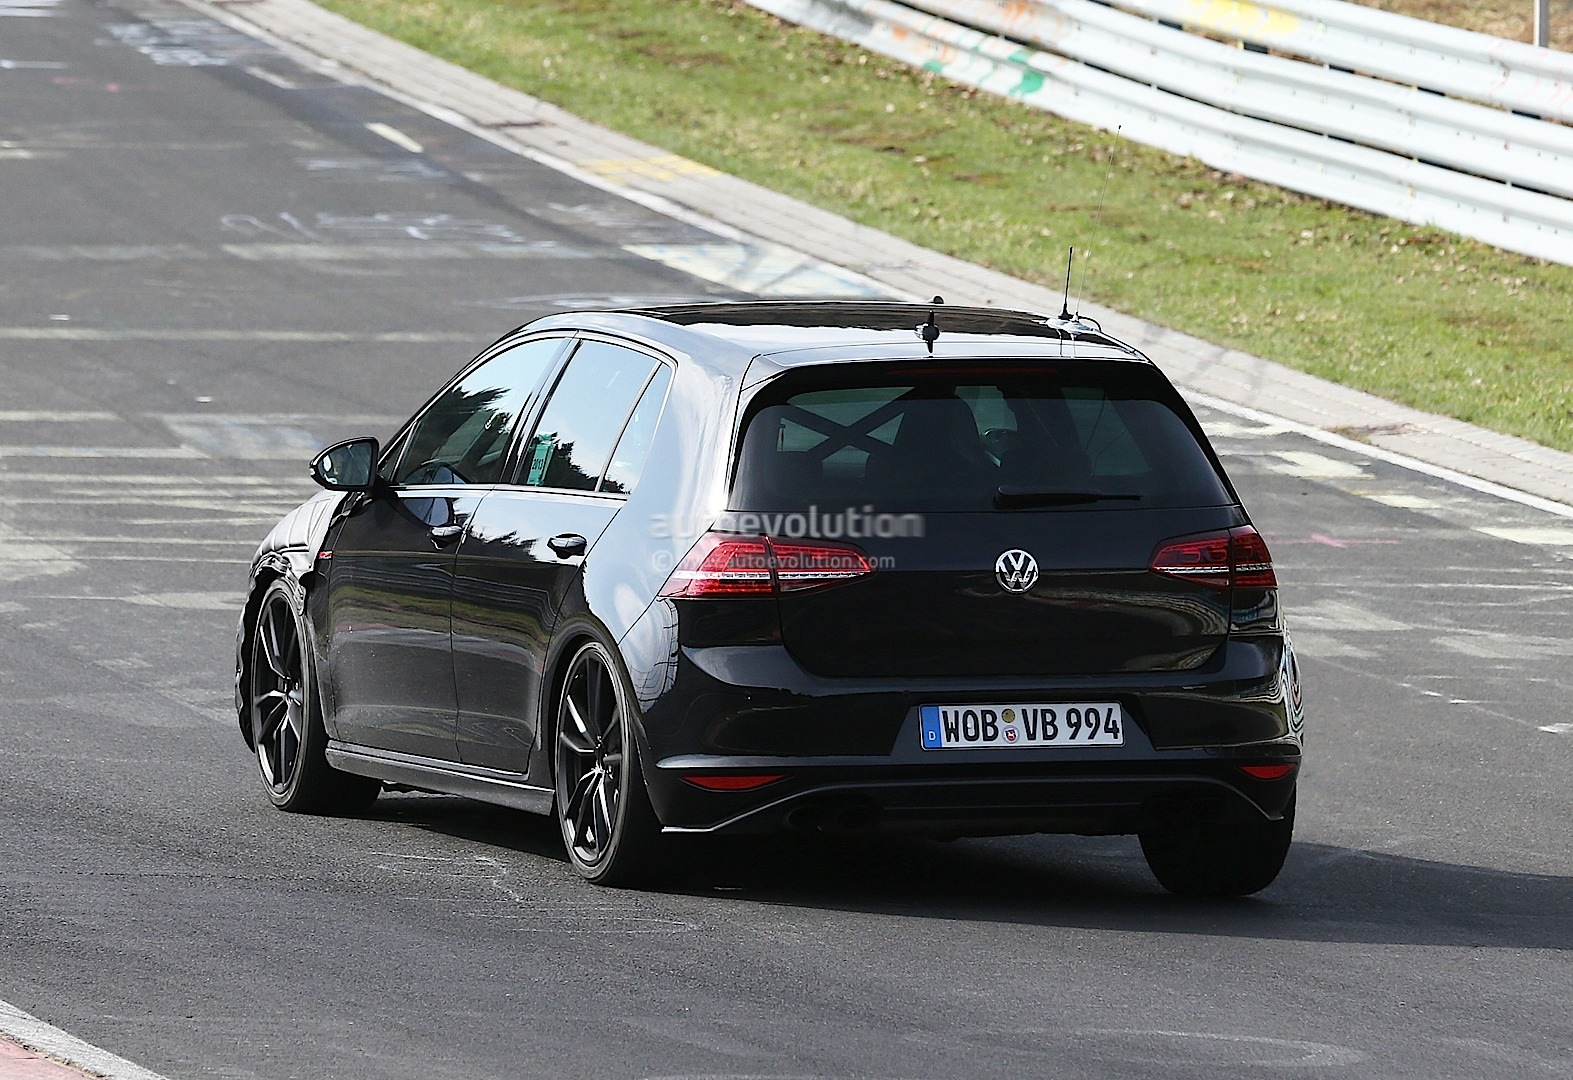 s0 surprise la vw golf r sur le ring 290972 golf vii fireman161 photos club club. Black Bedroom Furniture Sets. Home Design Ideas